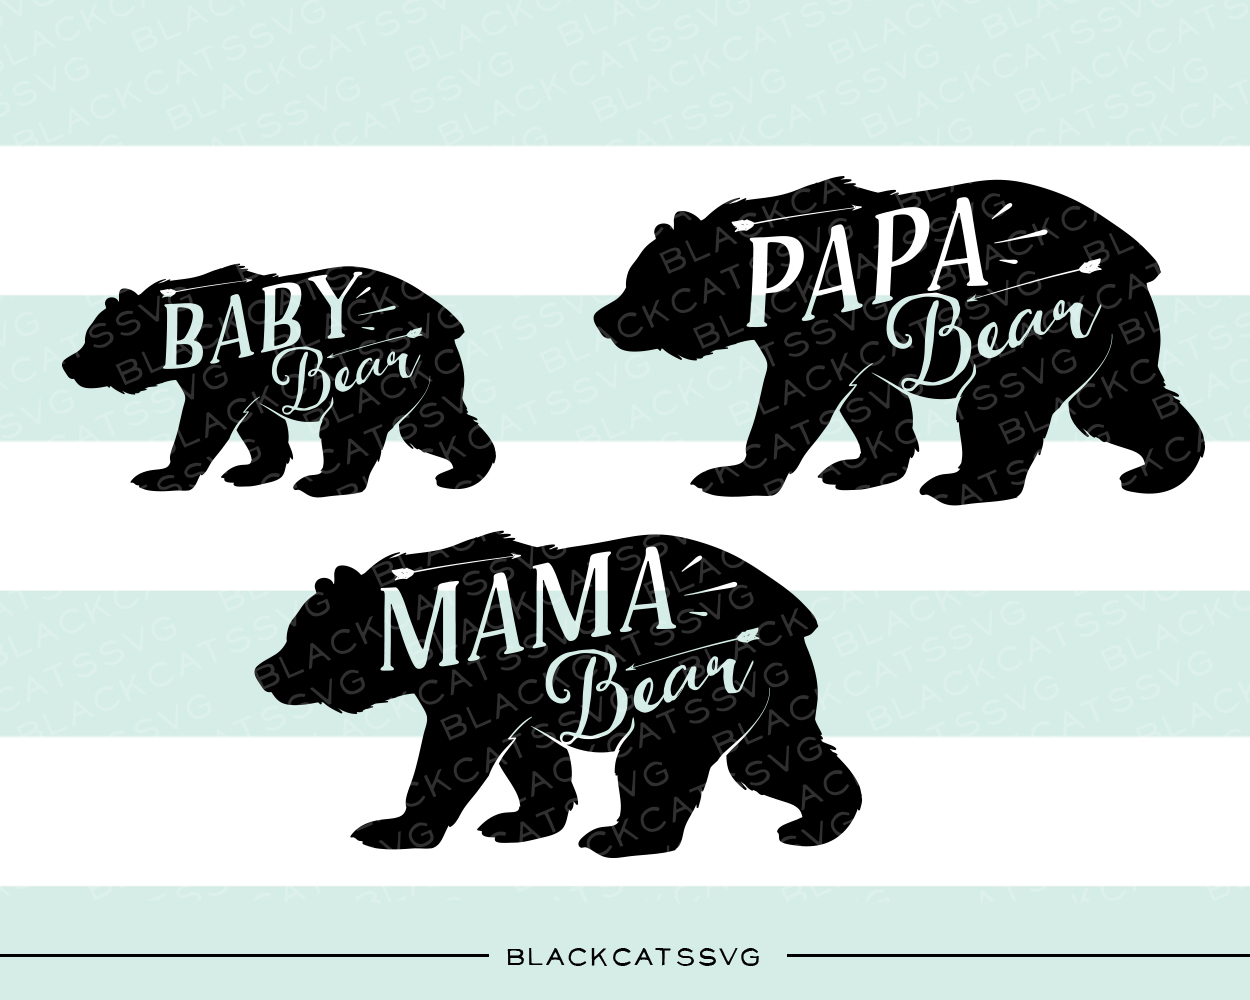 Bear Family Baby Craft Cut File By BlackCatsSVG